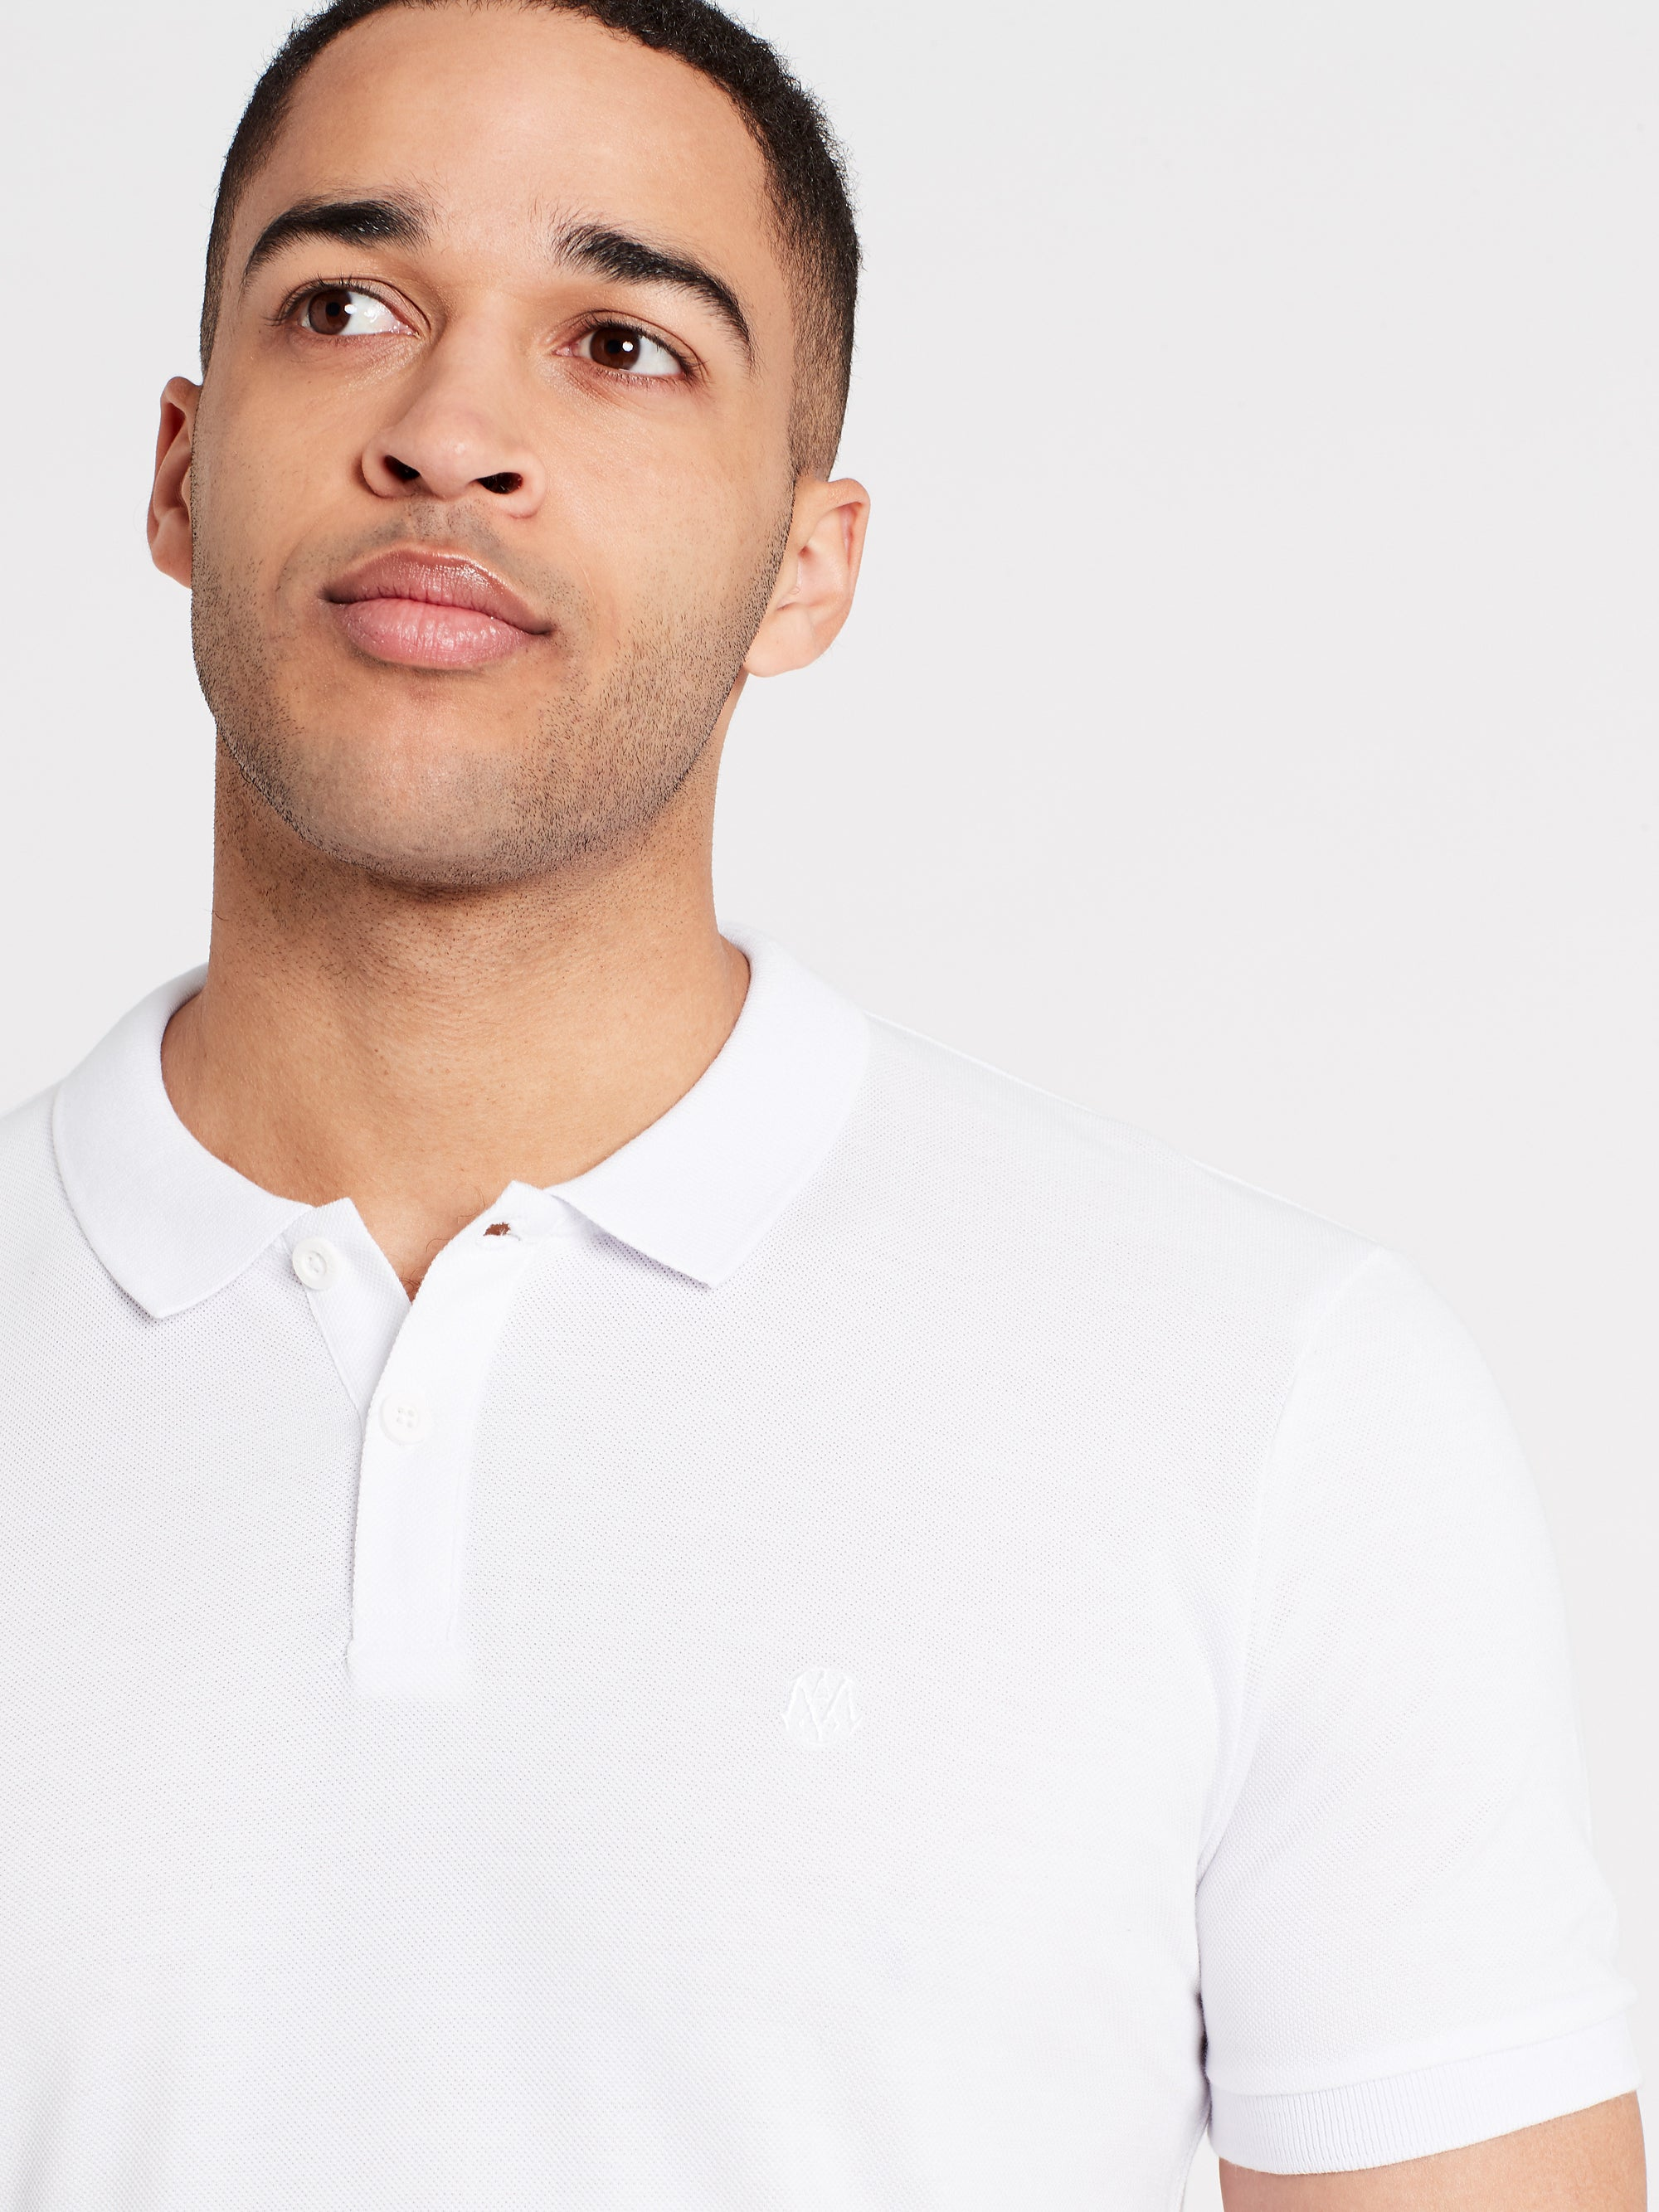 Mens Short Sleeve Polo Shirt White